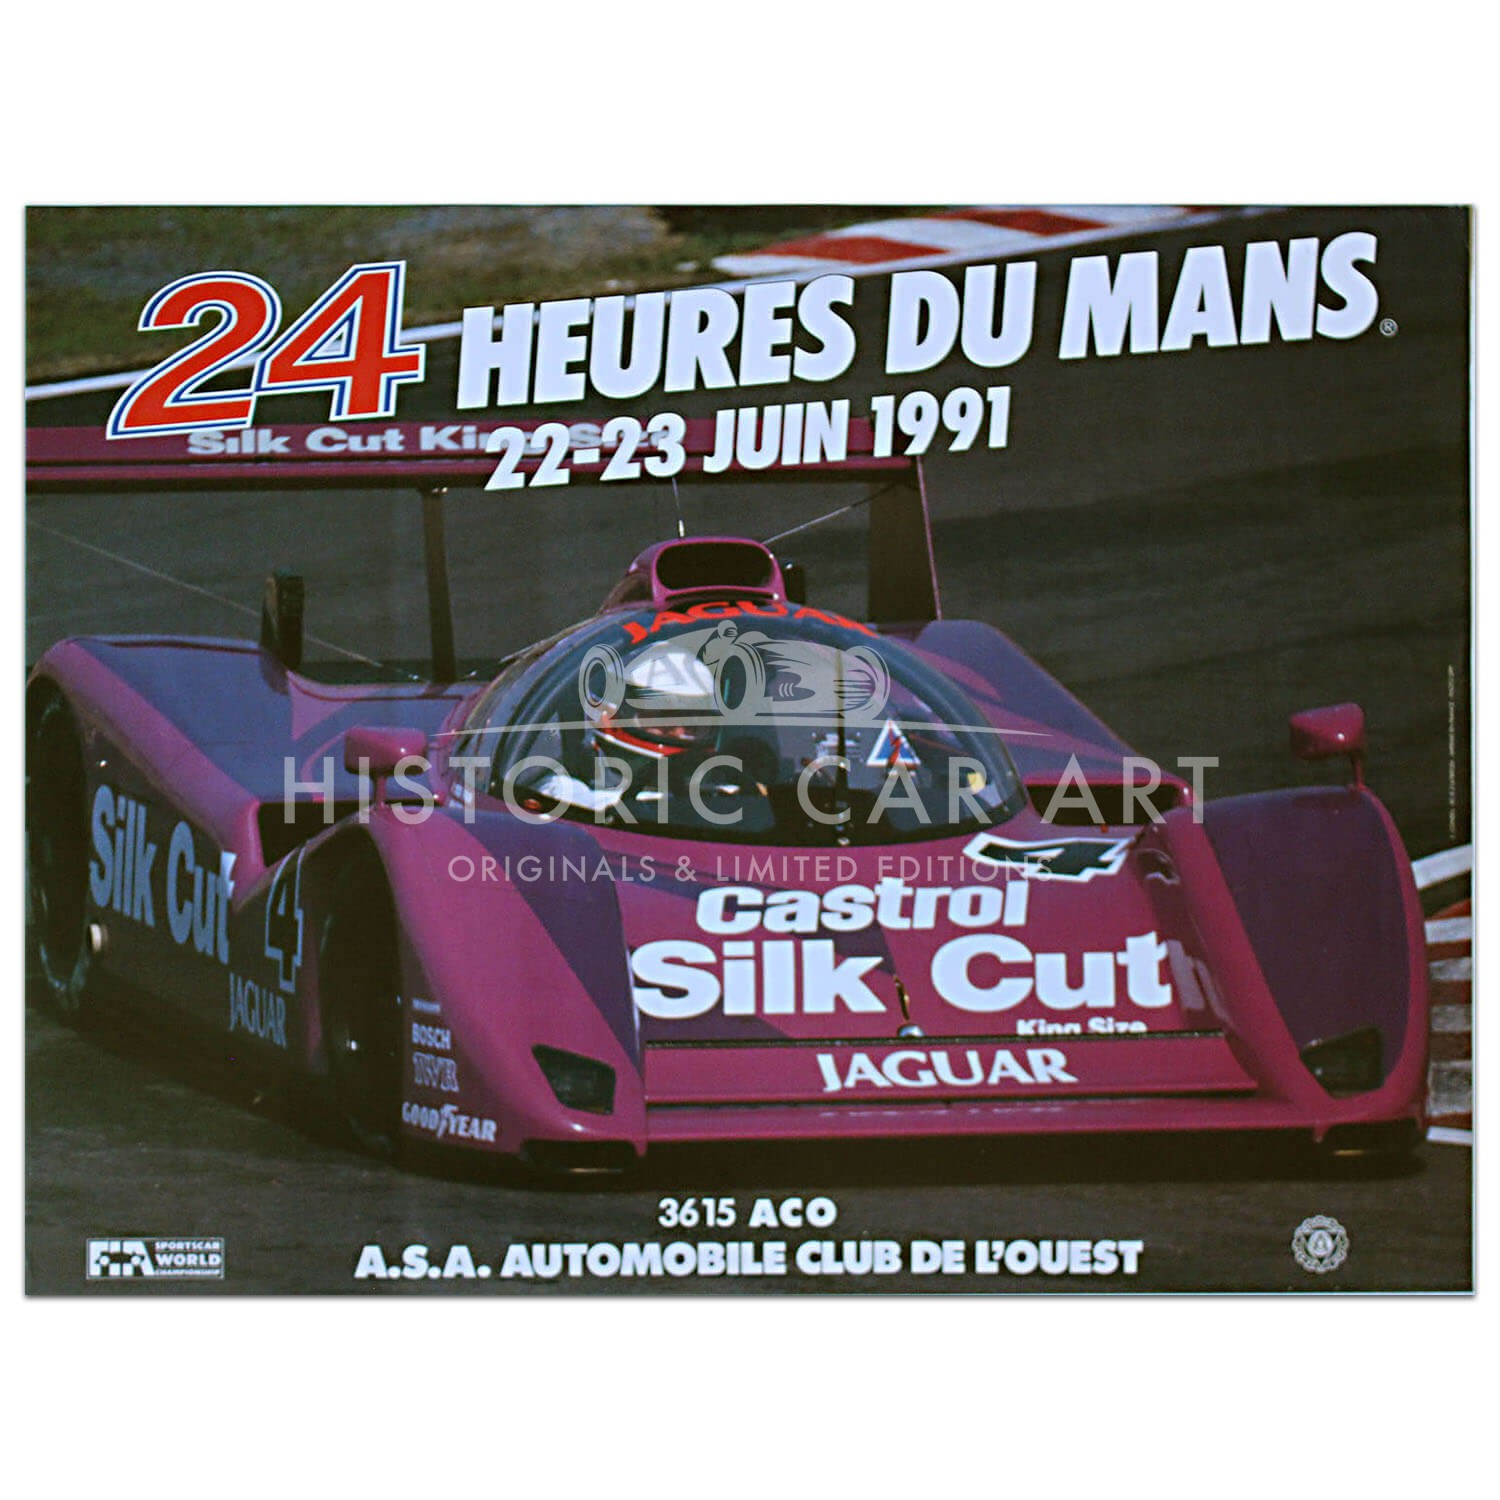 French | Le Mans 24 hours 1991 Poster